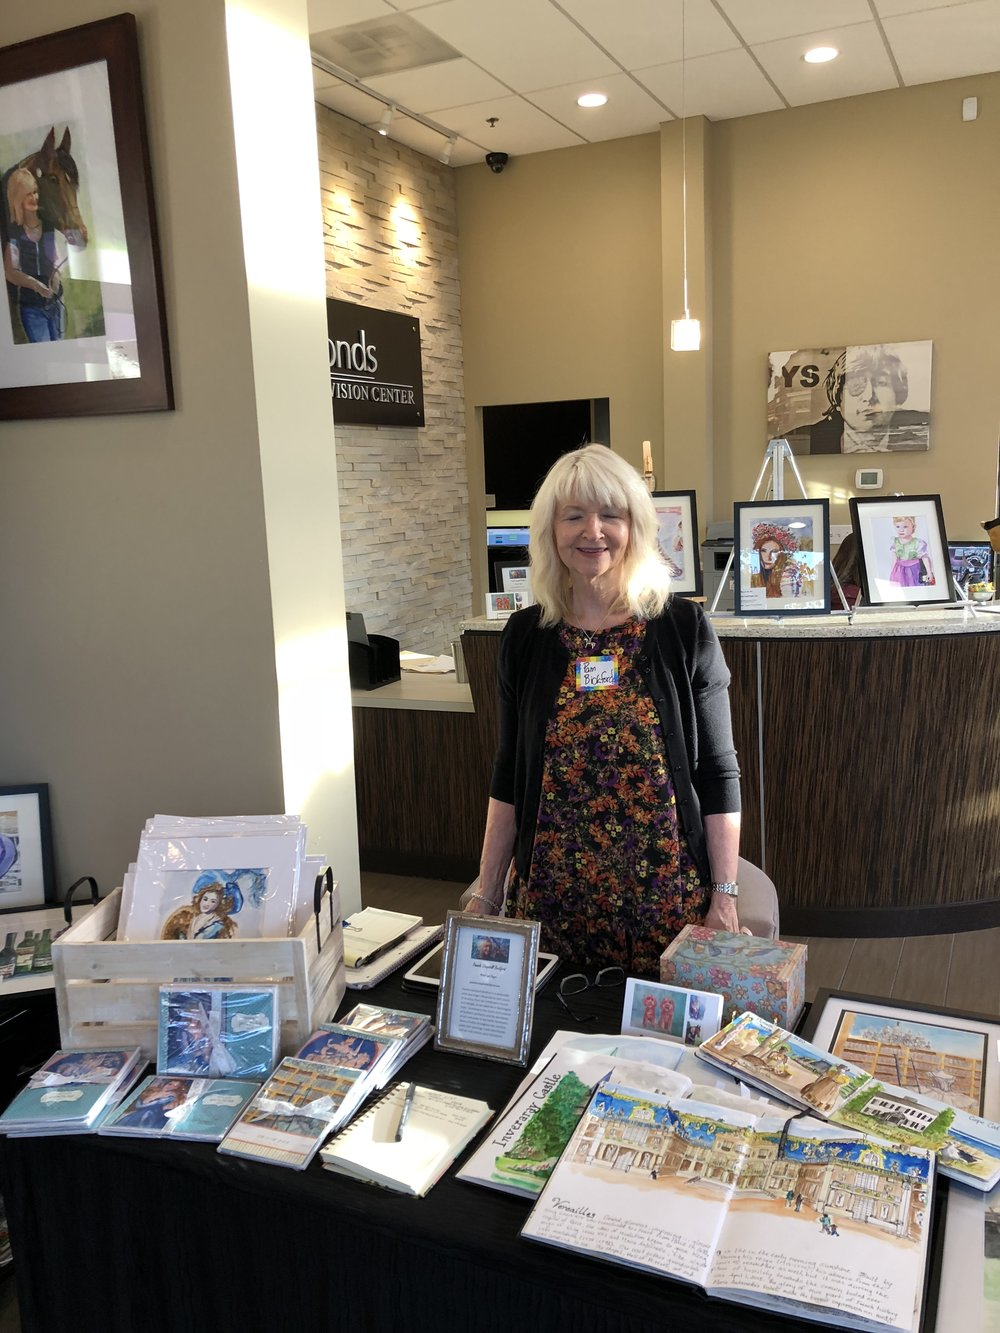 Last Thursaday was a wonderful evening at Art Walk Edmonds!  Thank you to AWE and the Enhanced Vision Center for hosting me!  My large paintings will be up on their Art Wall through November 16, 2018.  I hope you'll drop by to see them.  Enhanced Vision Center, 201 5th St. S., Edmonds, Washington  This week I will have other paintings , prints and cards at the Christmas at North Creek Holiday Boutique  on Thursday, 10/25, 10-6, Friday, 10/26, 10-6, and Saturday, 10/27, 10-4!  Christmas At North Creek, 621 164th St. SE, Mill Creek, Washington 98012  20% of all sales of this event go to suppor the Children's Hospice of St. Petersbur, Russia.